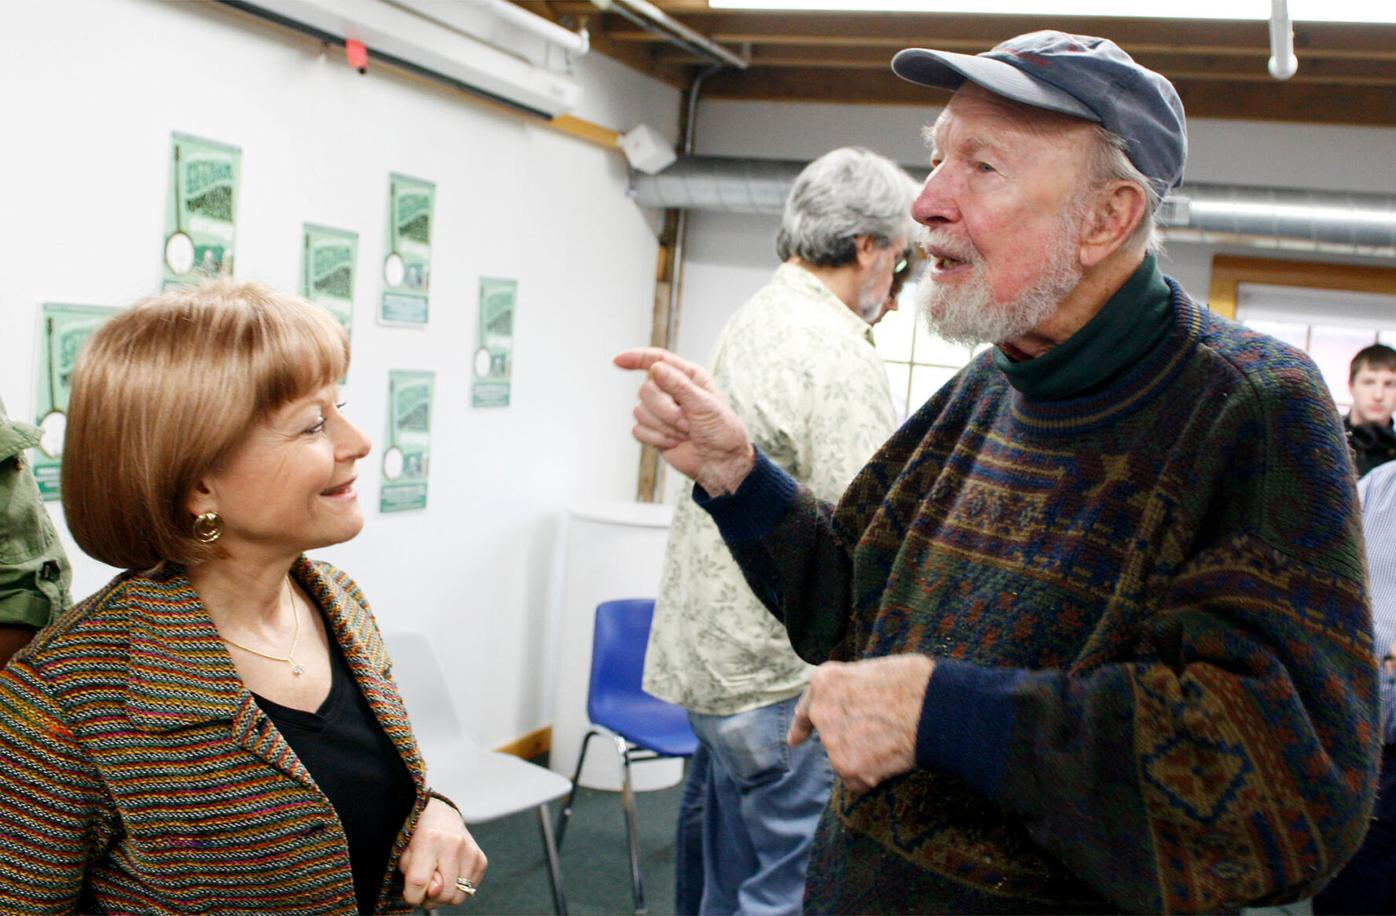 Pete Seeger's roots in Brattleboro were deep